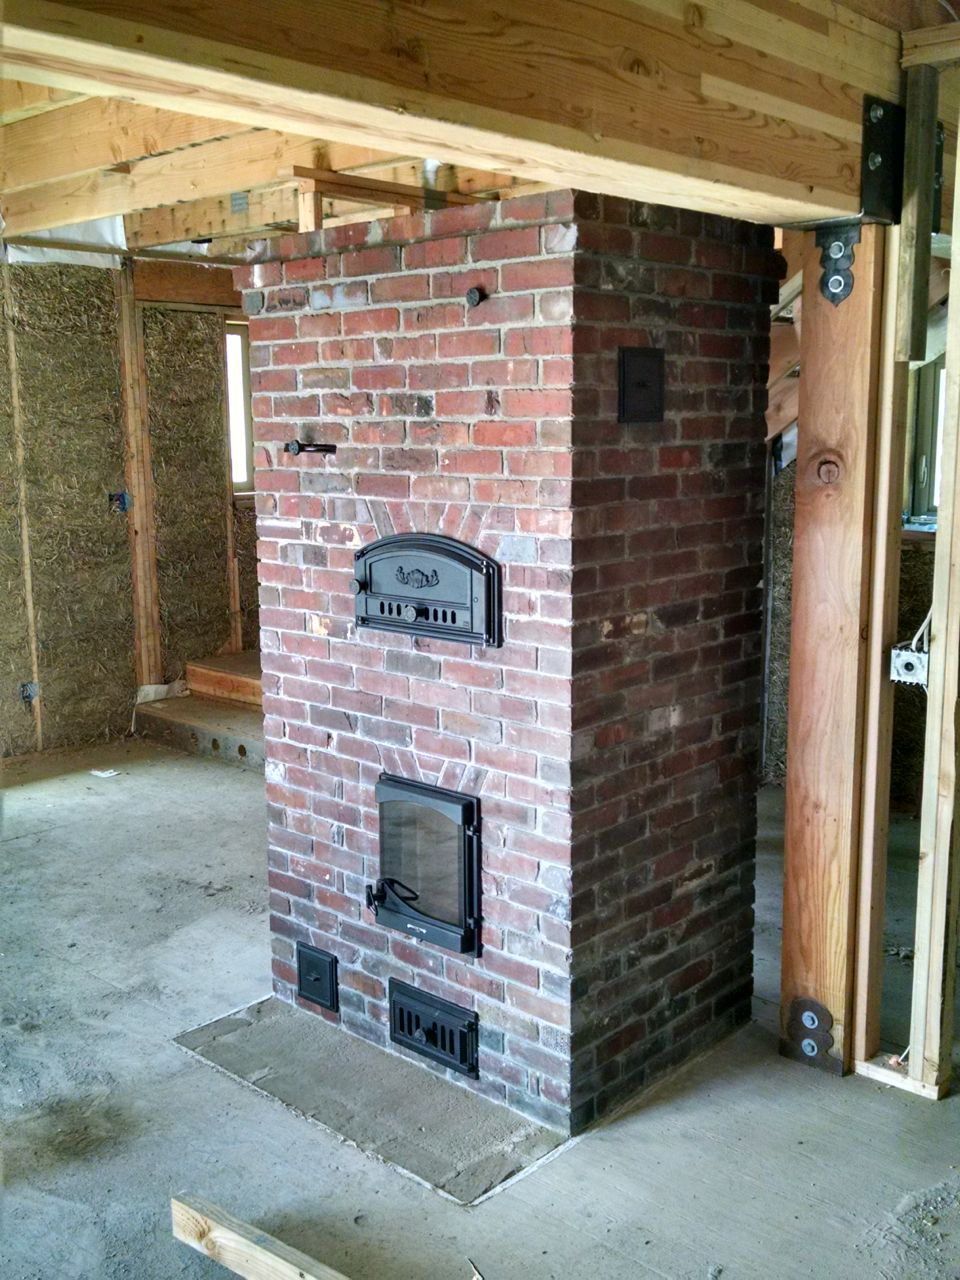 templefire port townsend wa jason temple masonry heater